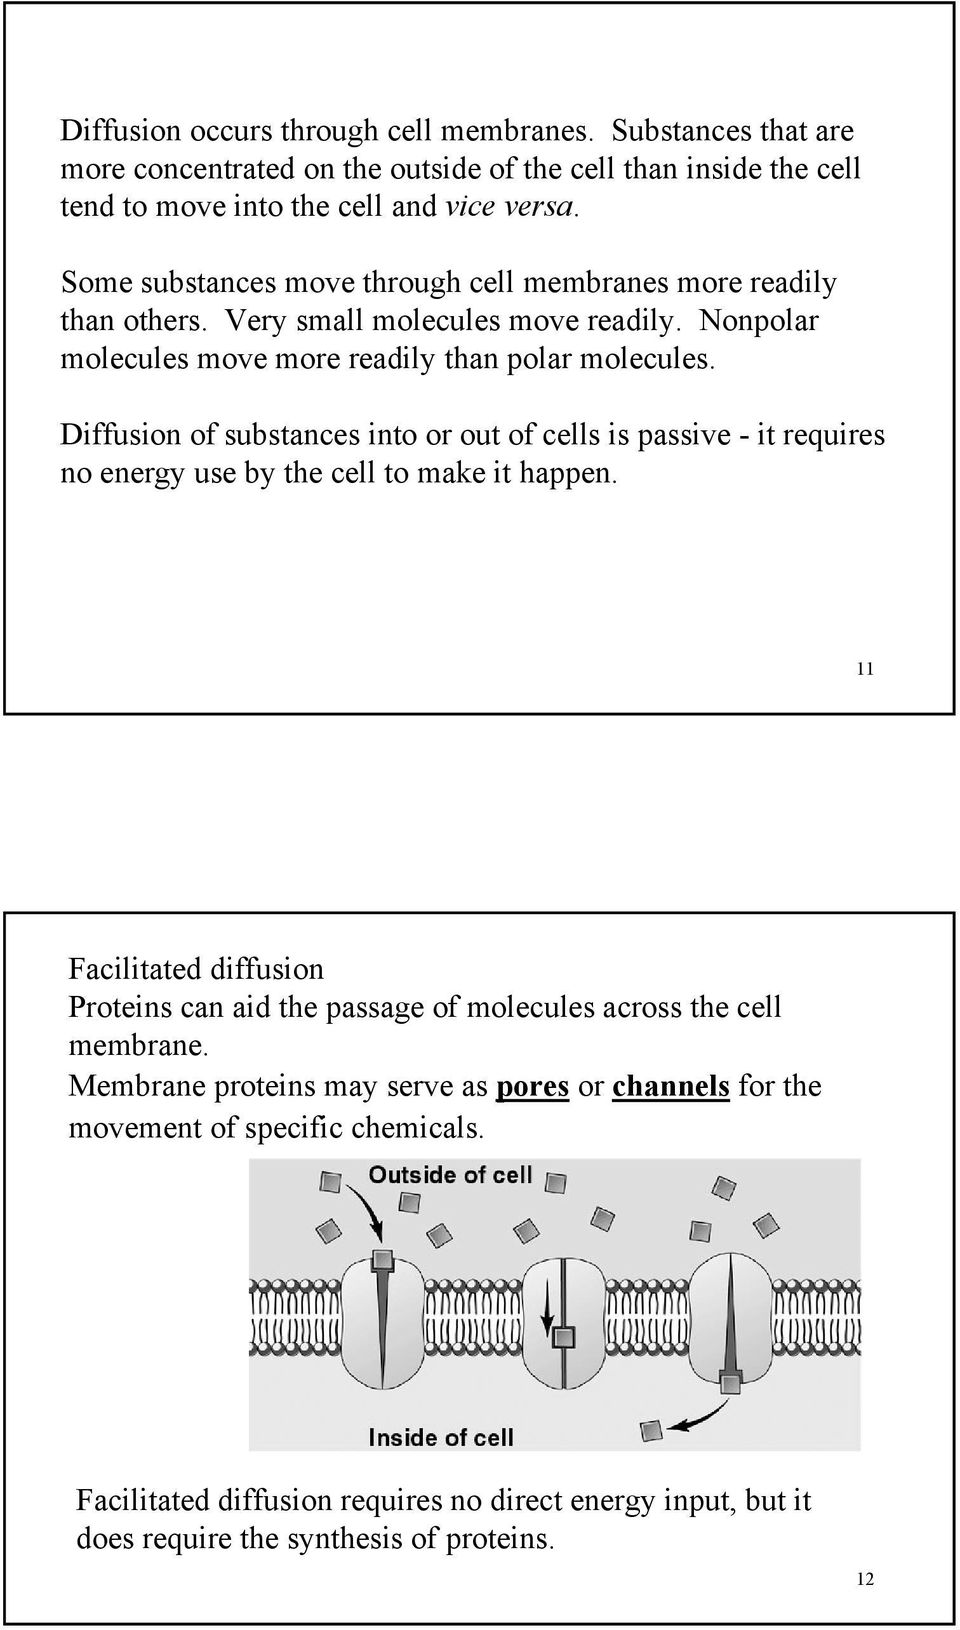 Diffusion of substances into or out of cells is passive - it requires no energy use by the cell to make it happen.